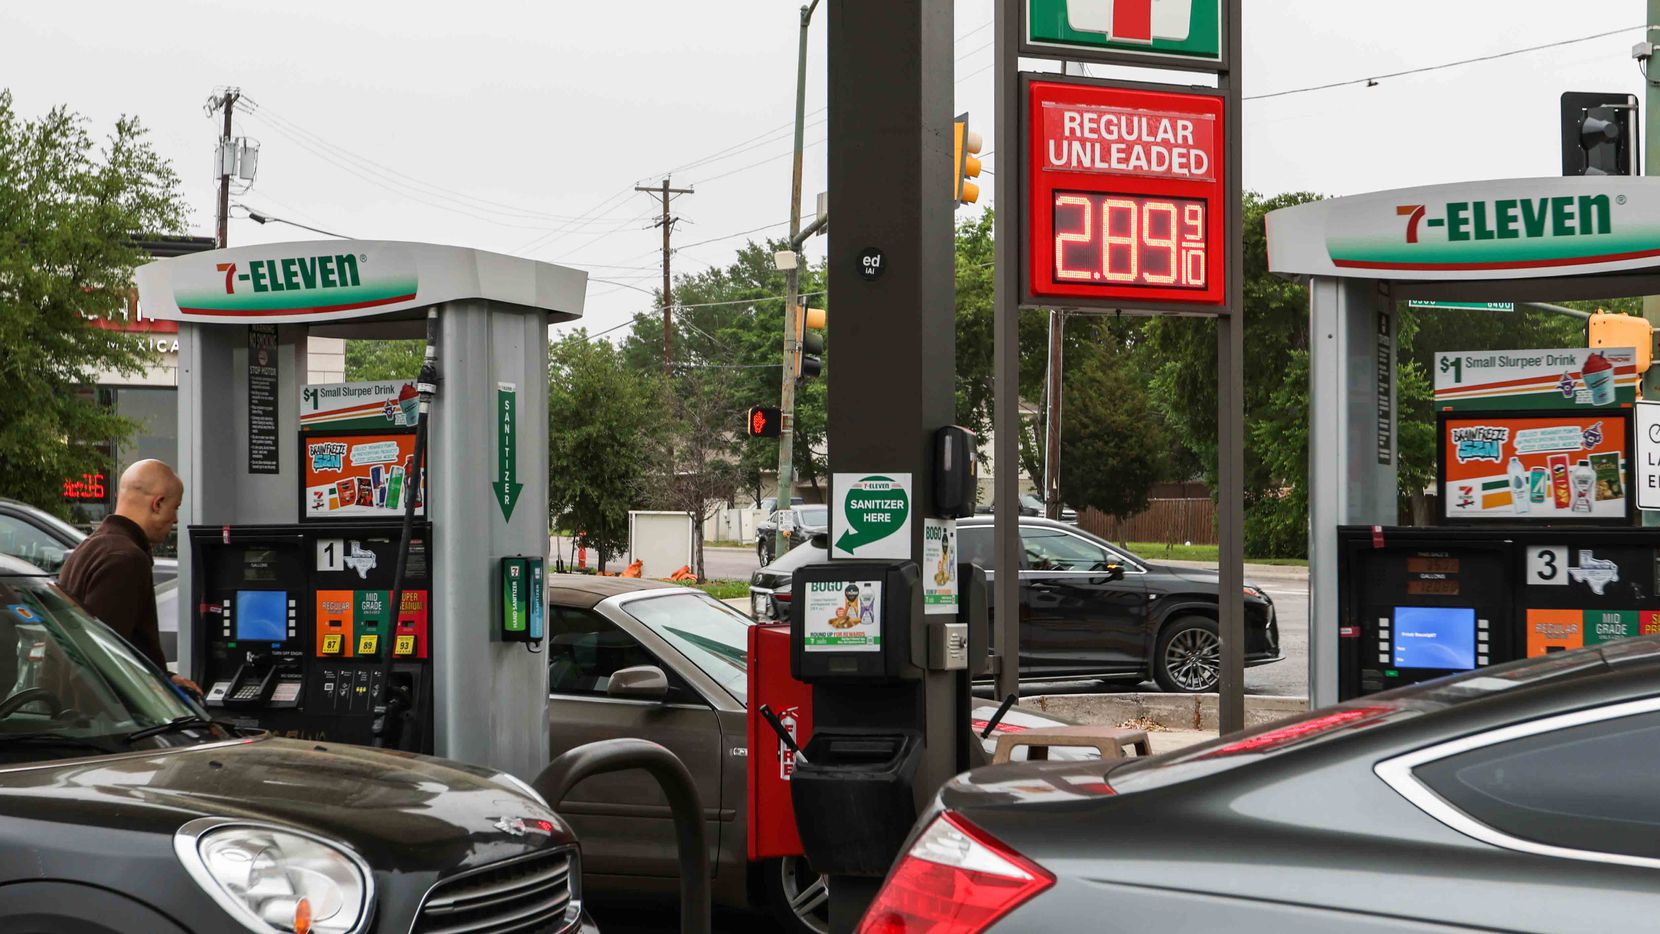 Irving-based 7-Eleven is a major U.S. seller of gasoline. Now it's adding electric vehicle charging to its parking lots to remain convenient to a growing group of Americans buying electric vehicles.